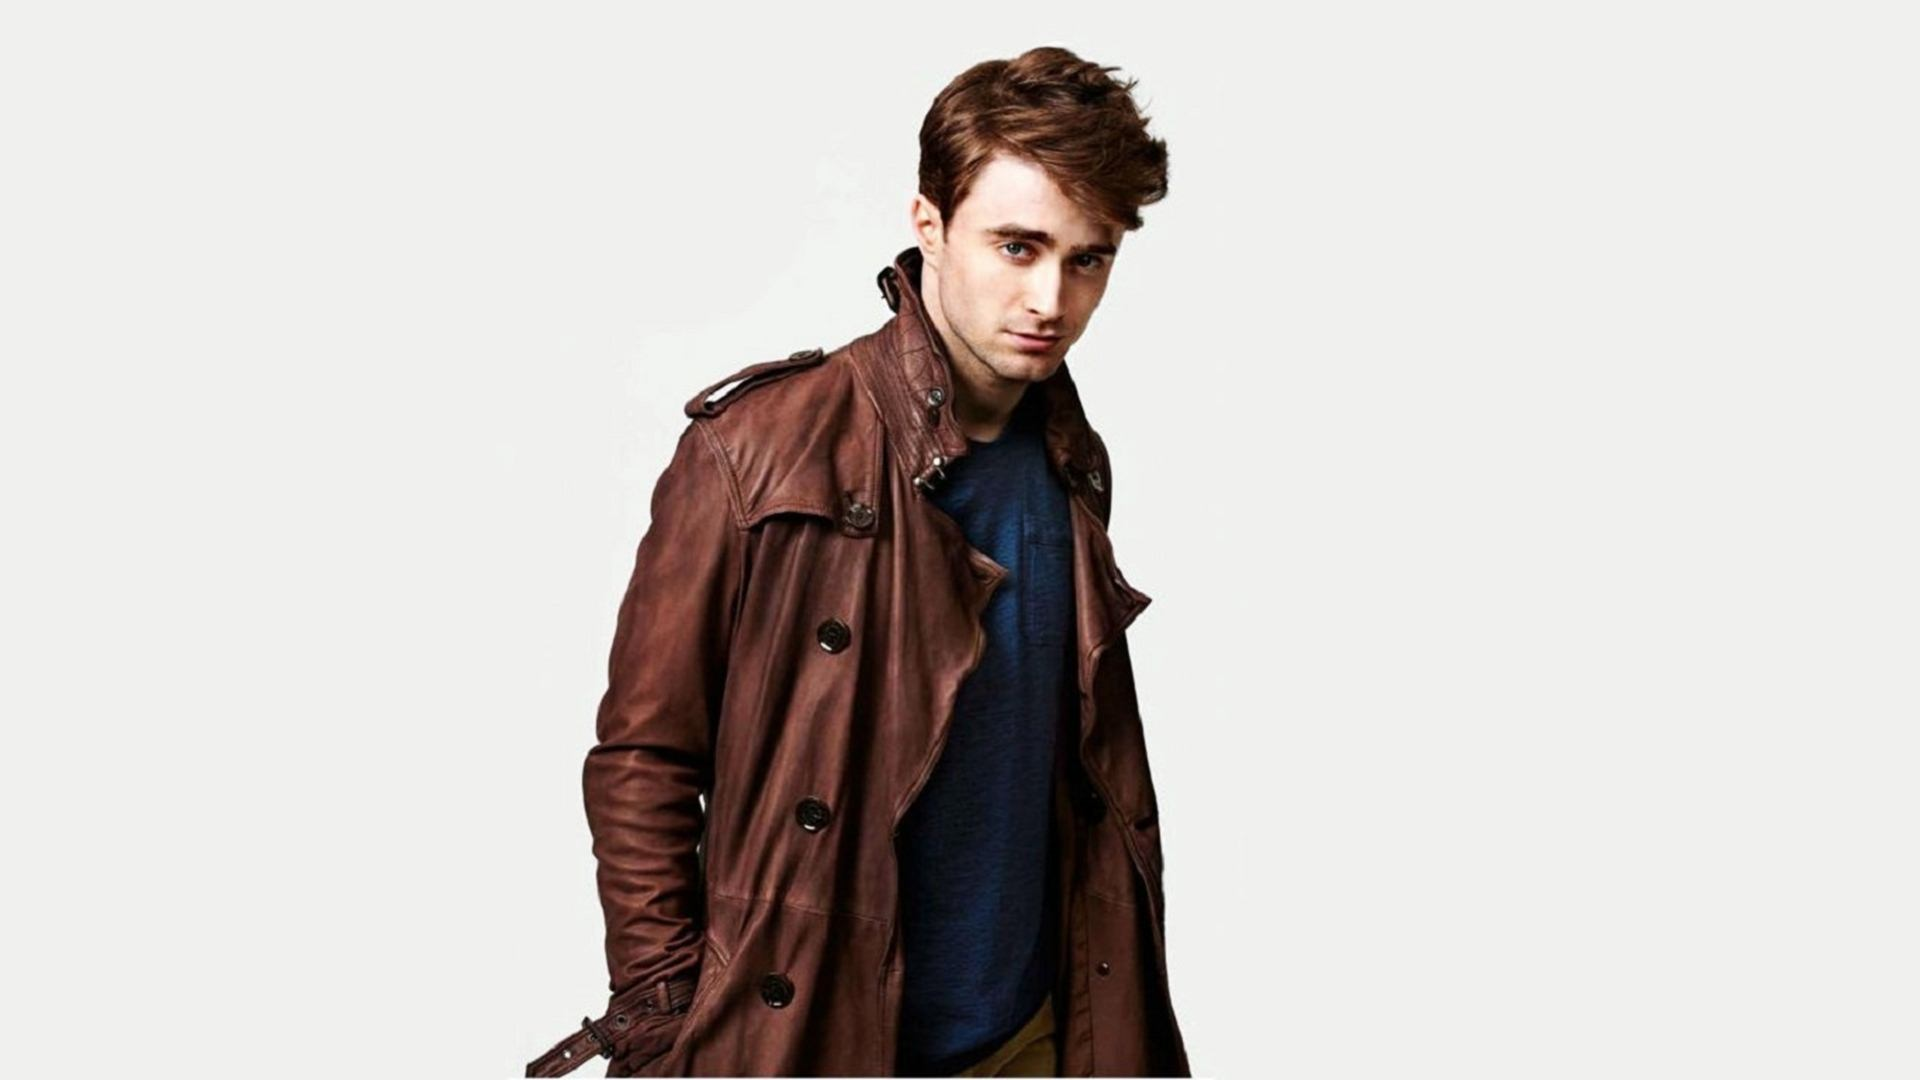 radcliffe hd wallpapers num2 - photo #8